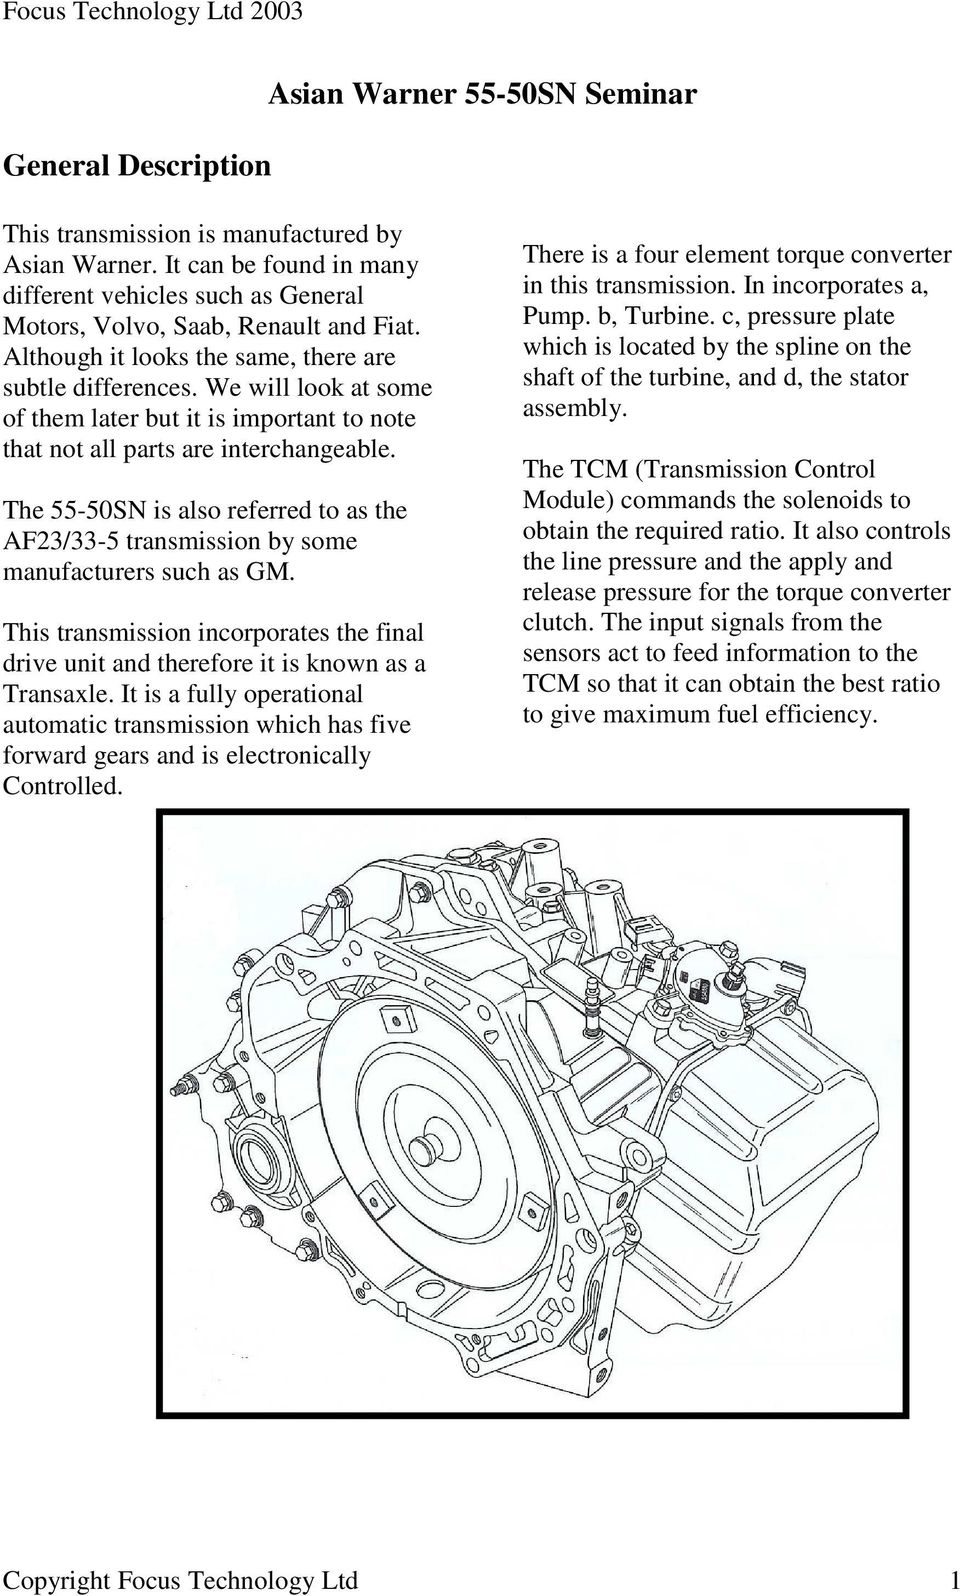 Asian Warner 55 50sn Seminar Pdf Renault Transmission Diagrams The Is Also Referred To As Af23 33 5